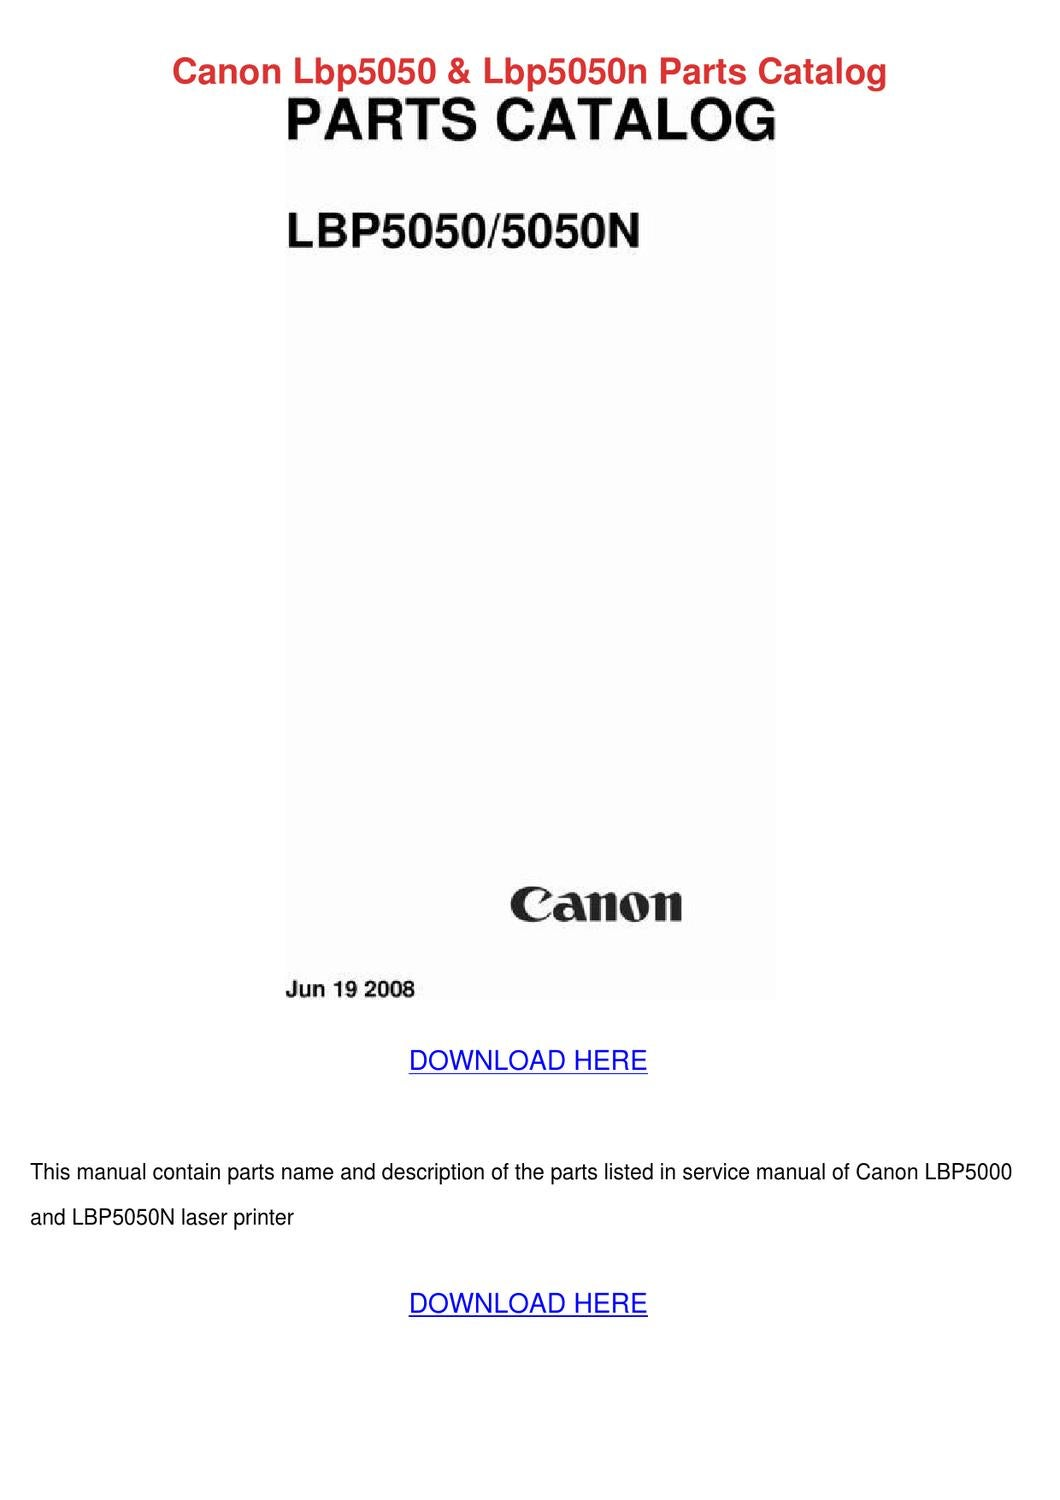 Canon Lbp5050 Lbp5050n Parts Catalog by Cathi Keegan - issuu